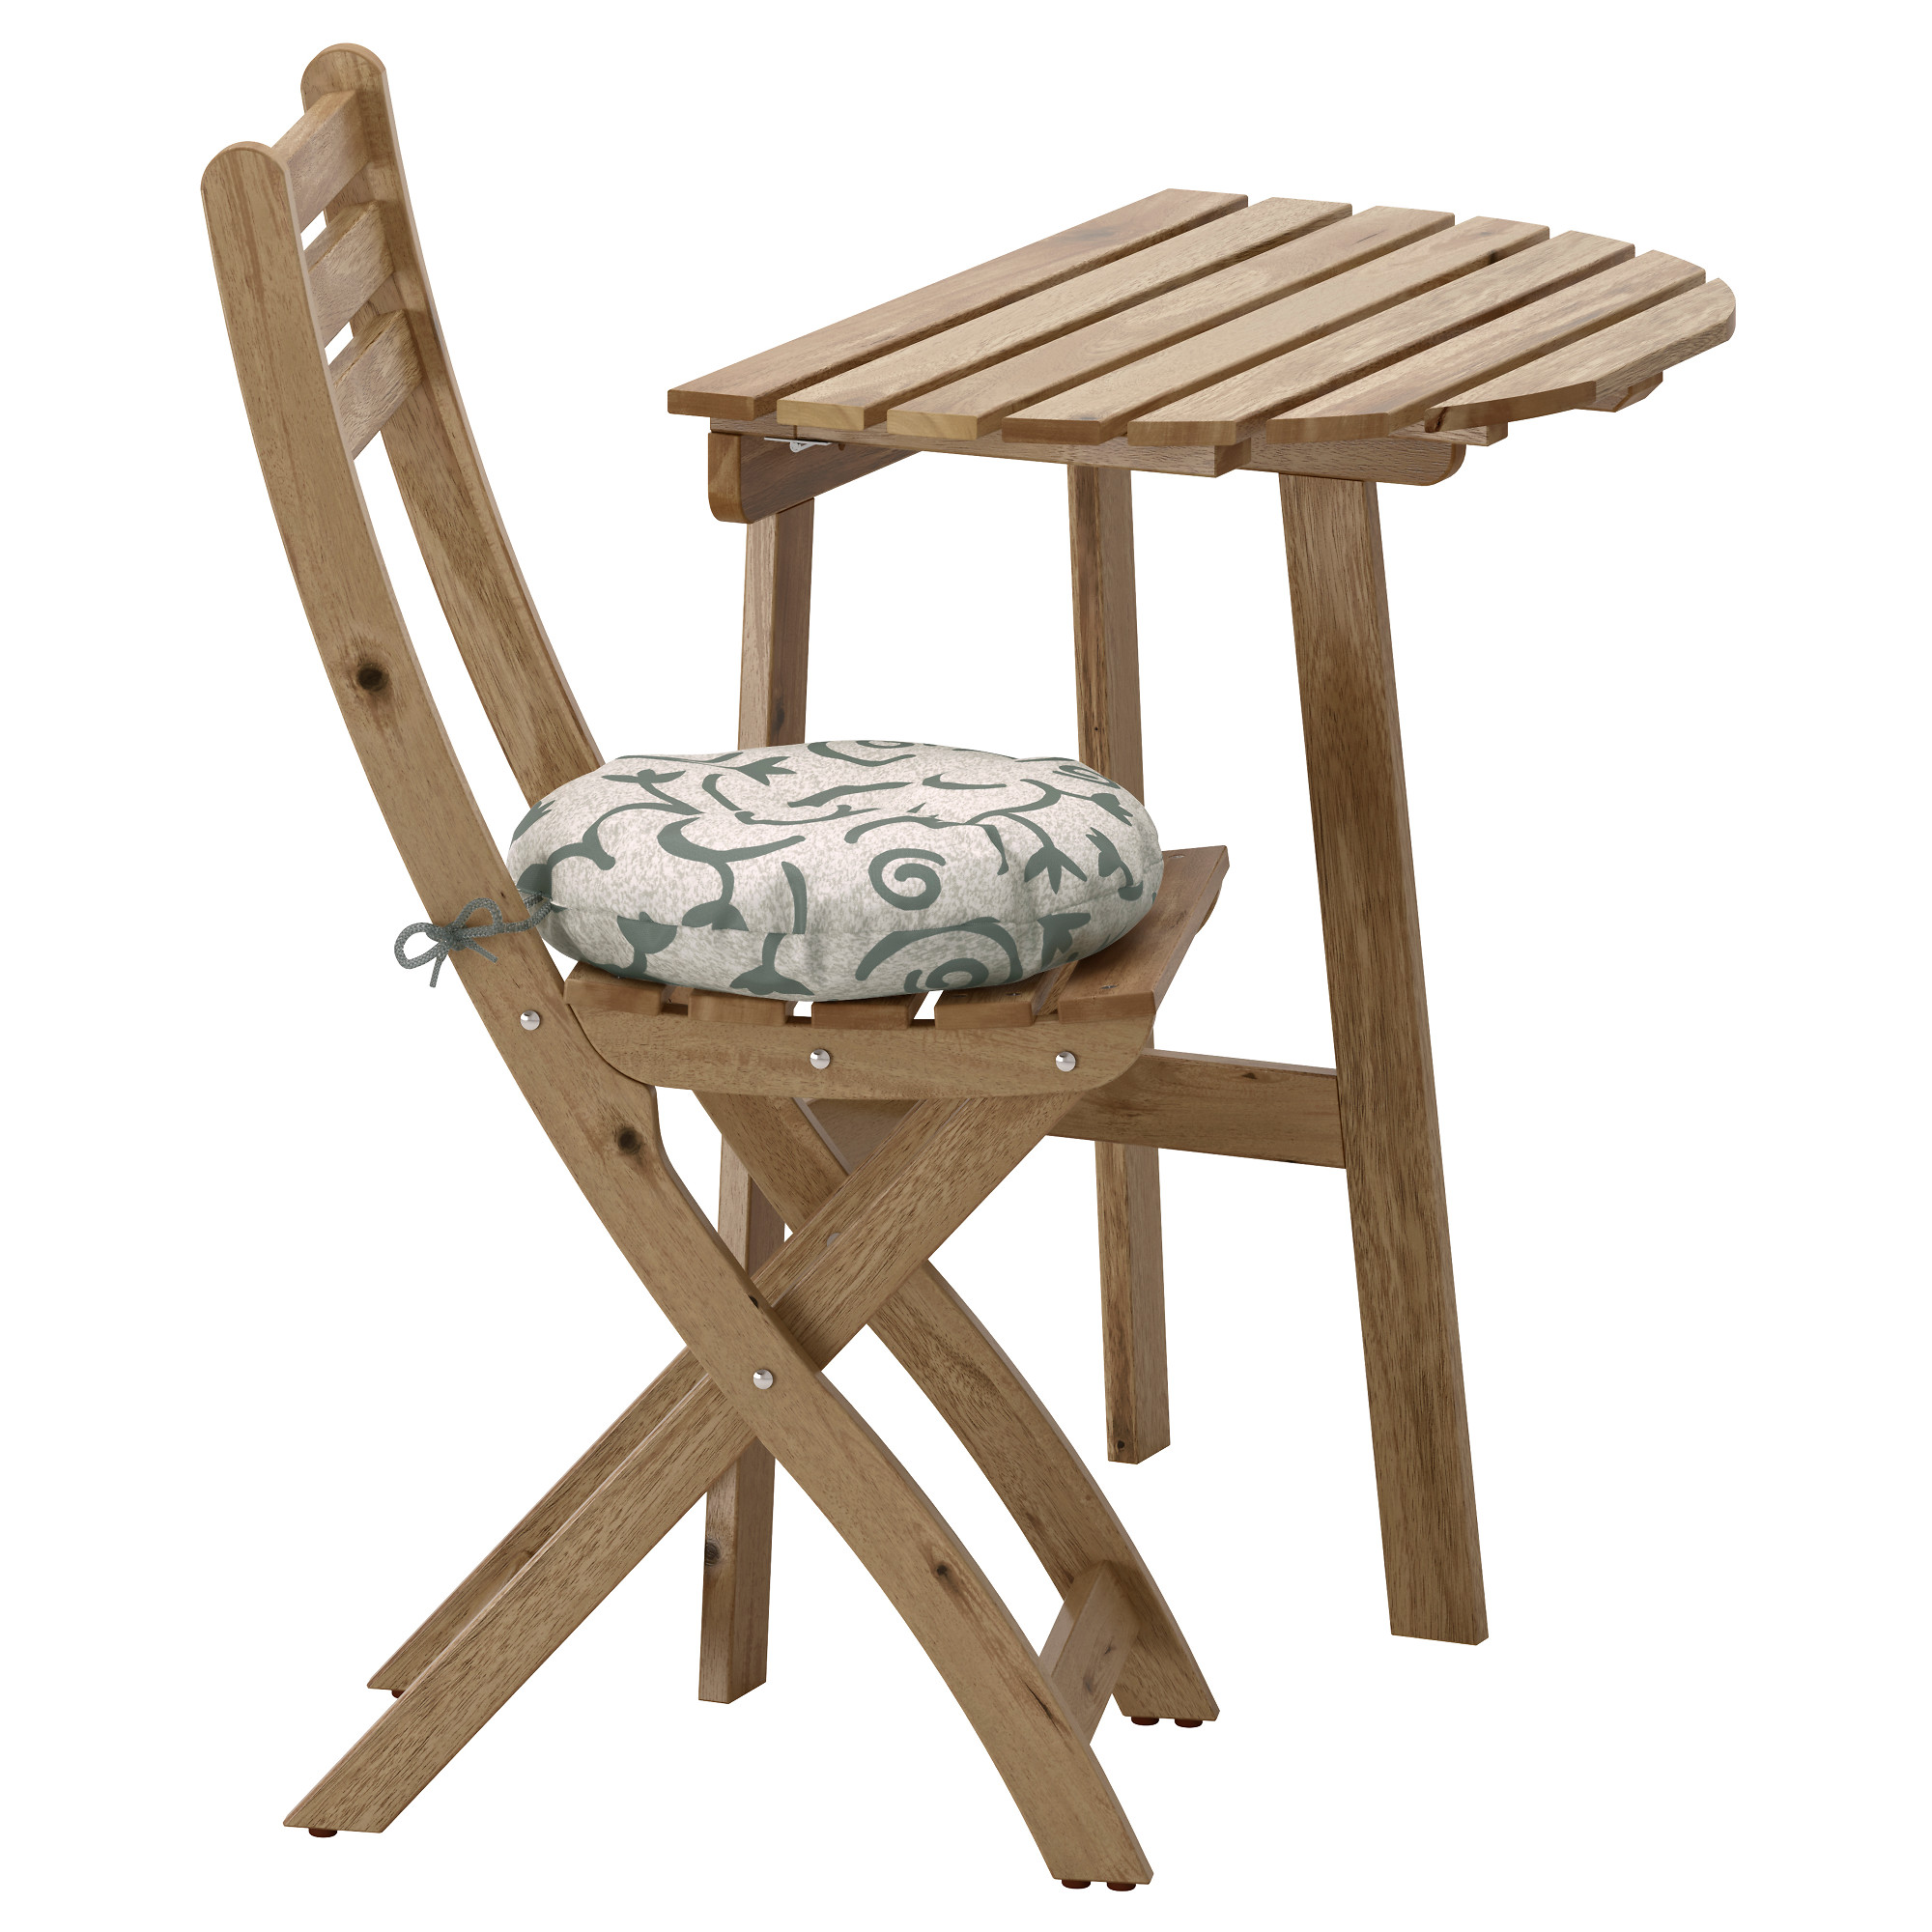 Wood folding chair outdoor - Askholmen Wall Table Folding Chair Outdoor Gray Brown Stained Steg N Beige